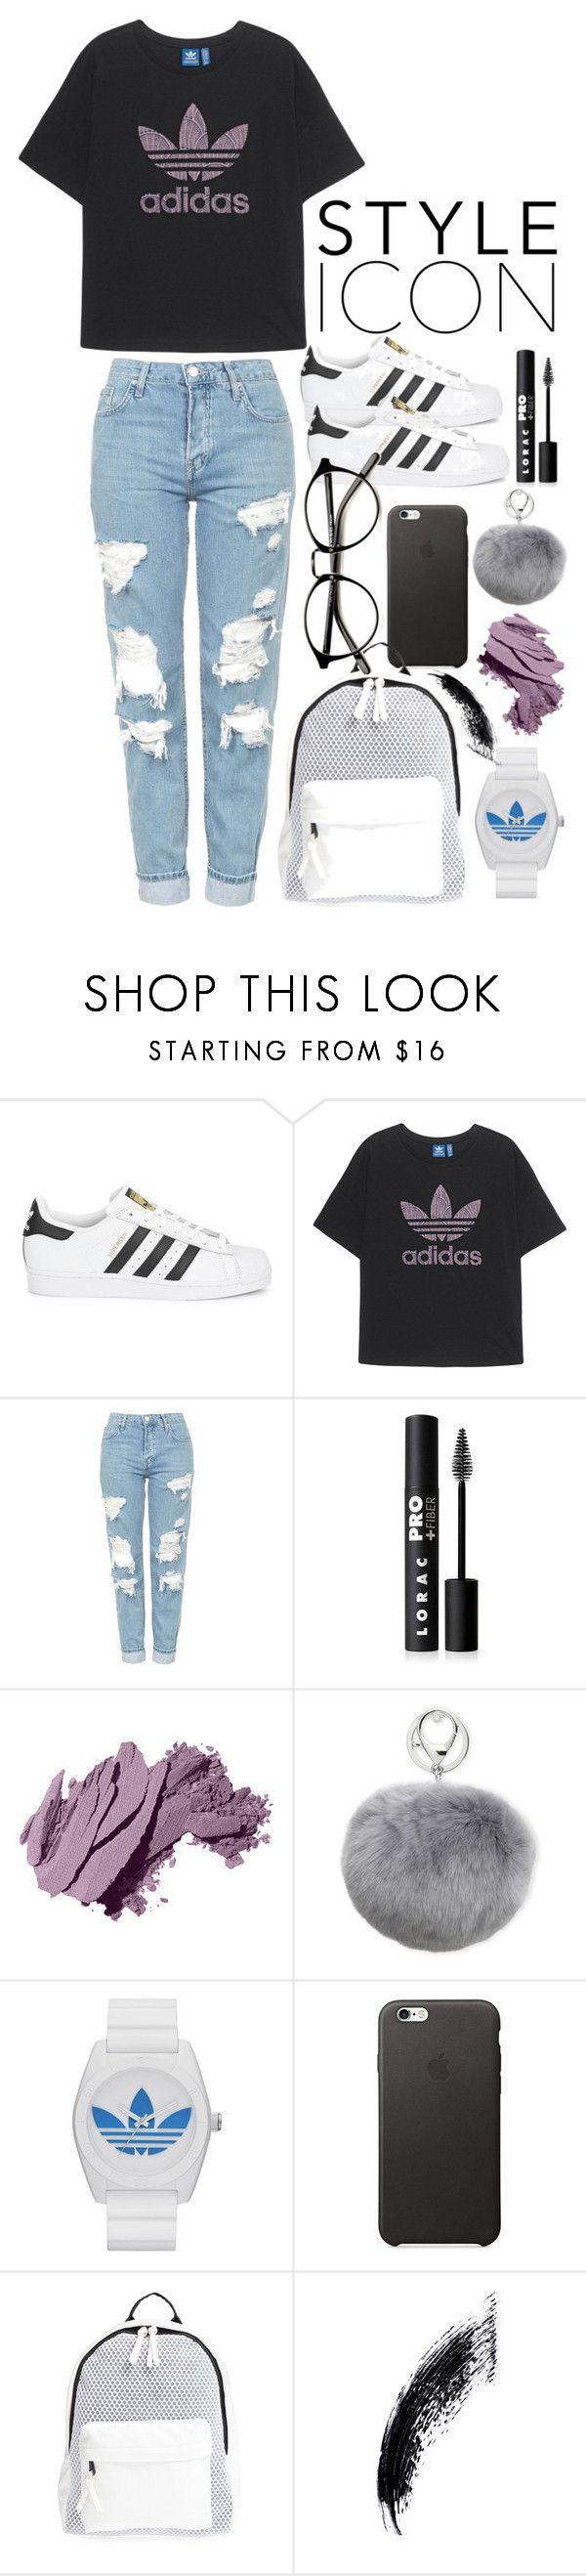 """cute outfit"" by katieivory ❤ liked on Polyvore featuring adidas Originals, Topshop, LORAC, Bobbi Brown Cosmetics, Adrienne Landau, adidas and Poverty Flats"